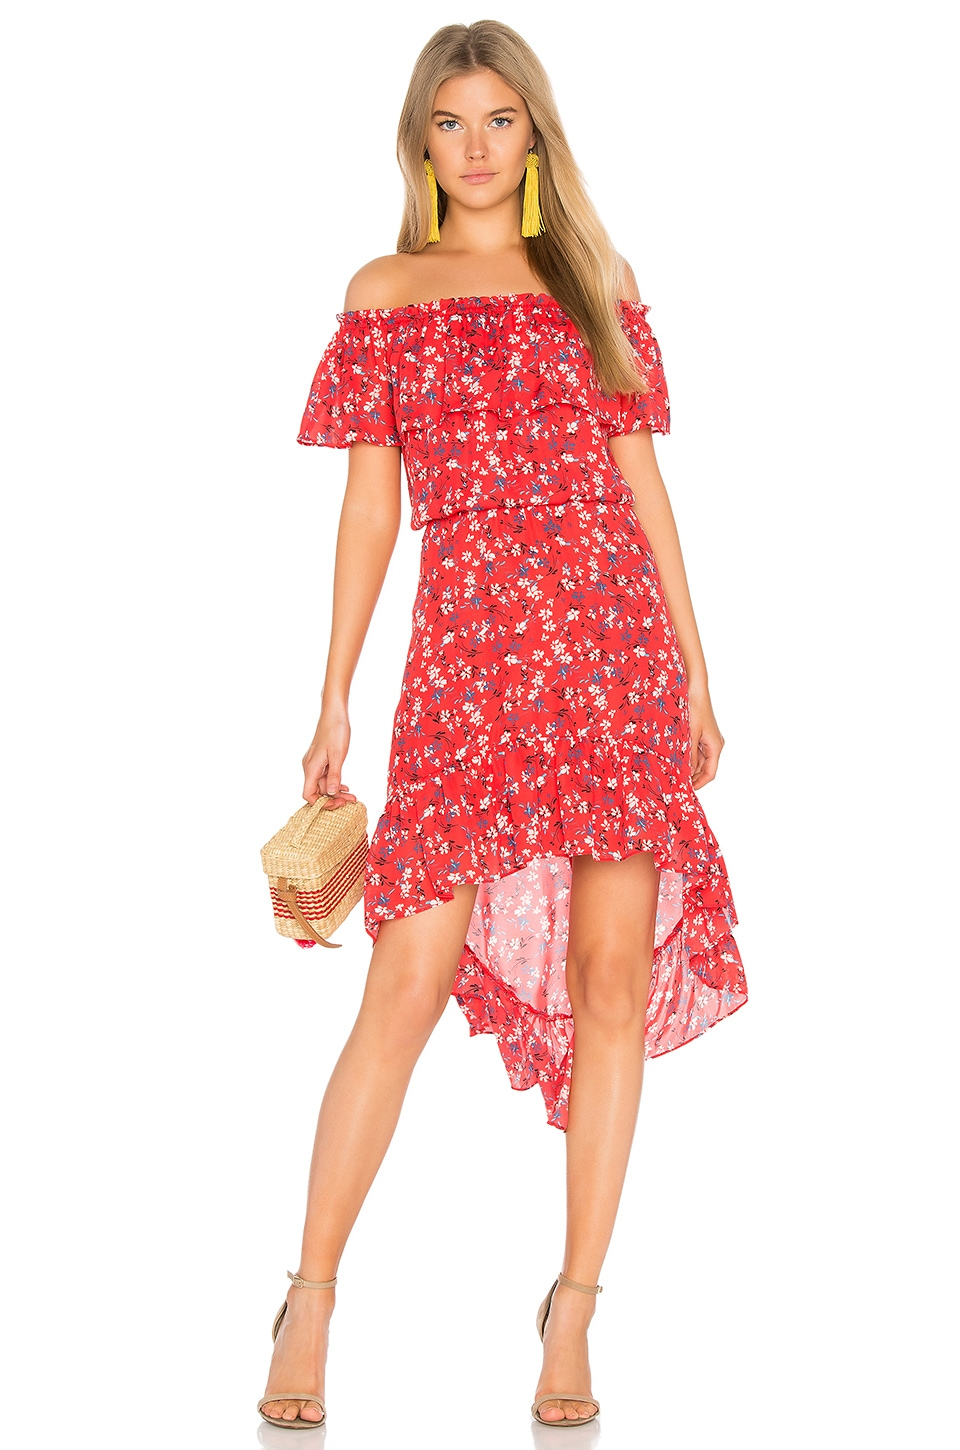 devlin Carrie Dress in Apple Ditsy Floral